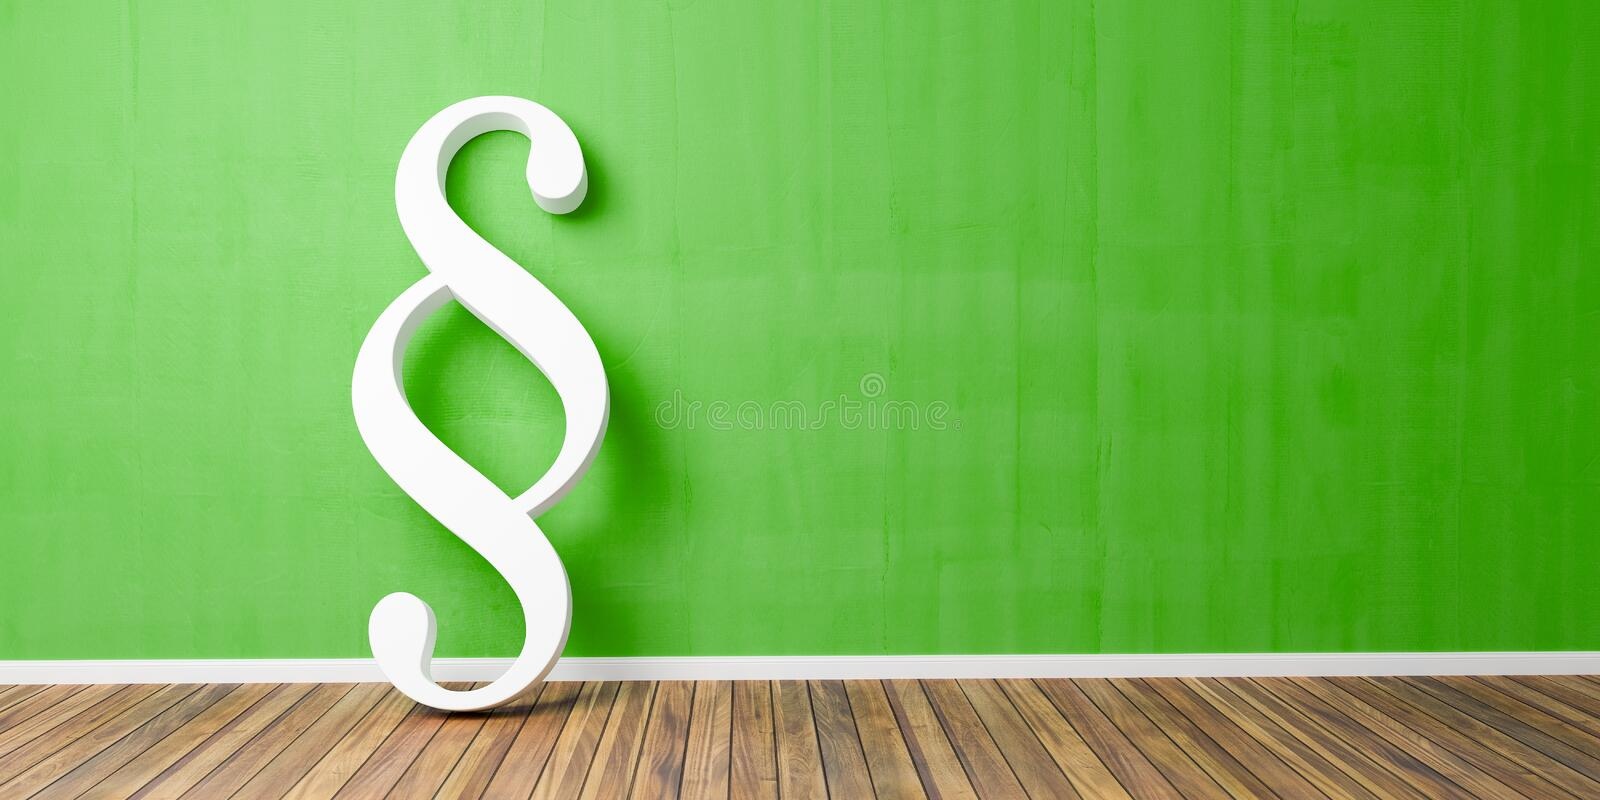 White Paragraph smybol against a green wall - law and justice concept image - 3D Illustration royalty free illustration